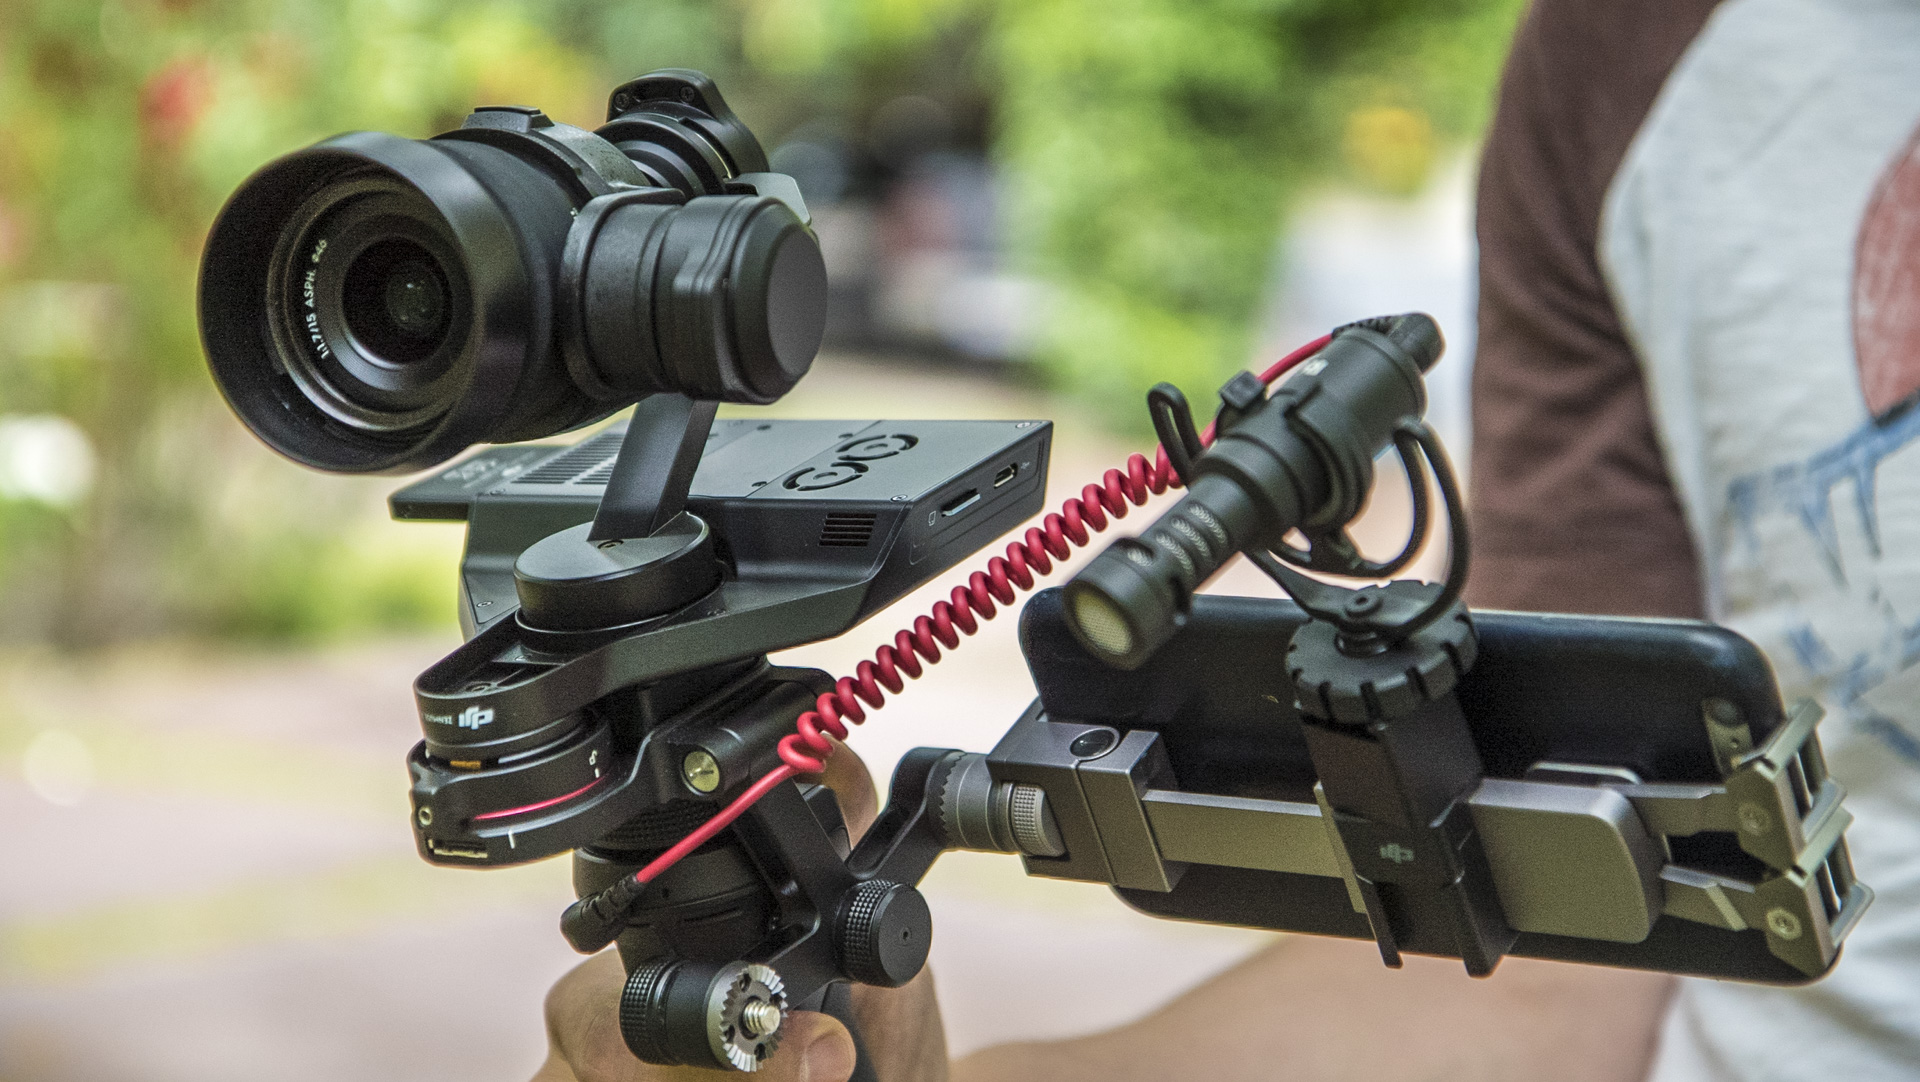 Dji Osmo Raw Review Zenmuse X5r First Footage Cinema5d Smartphone